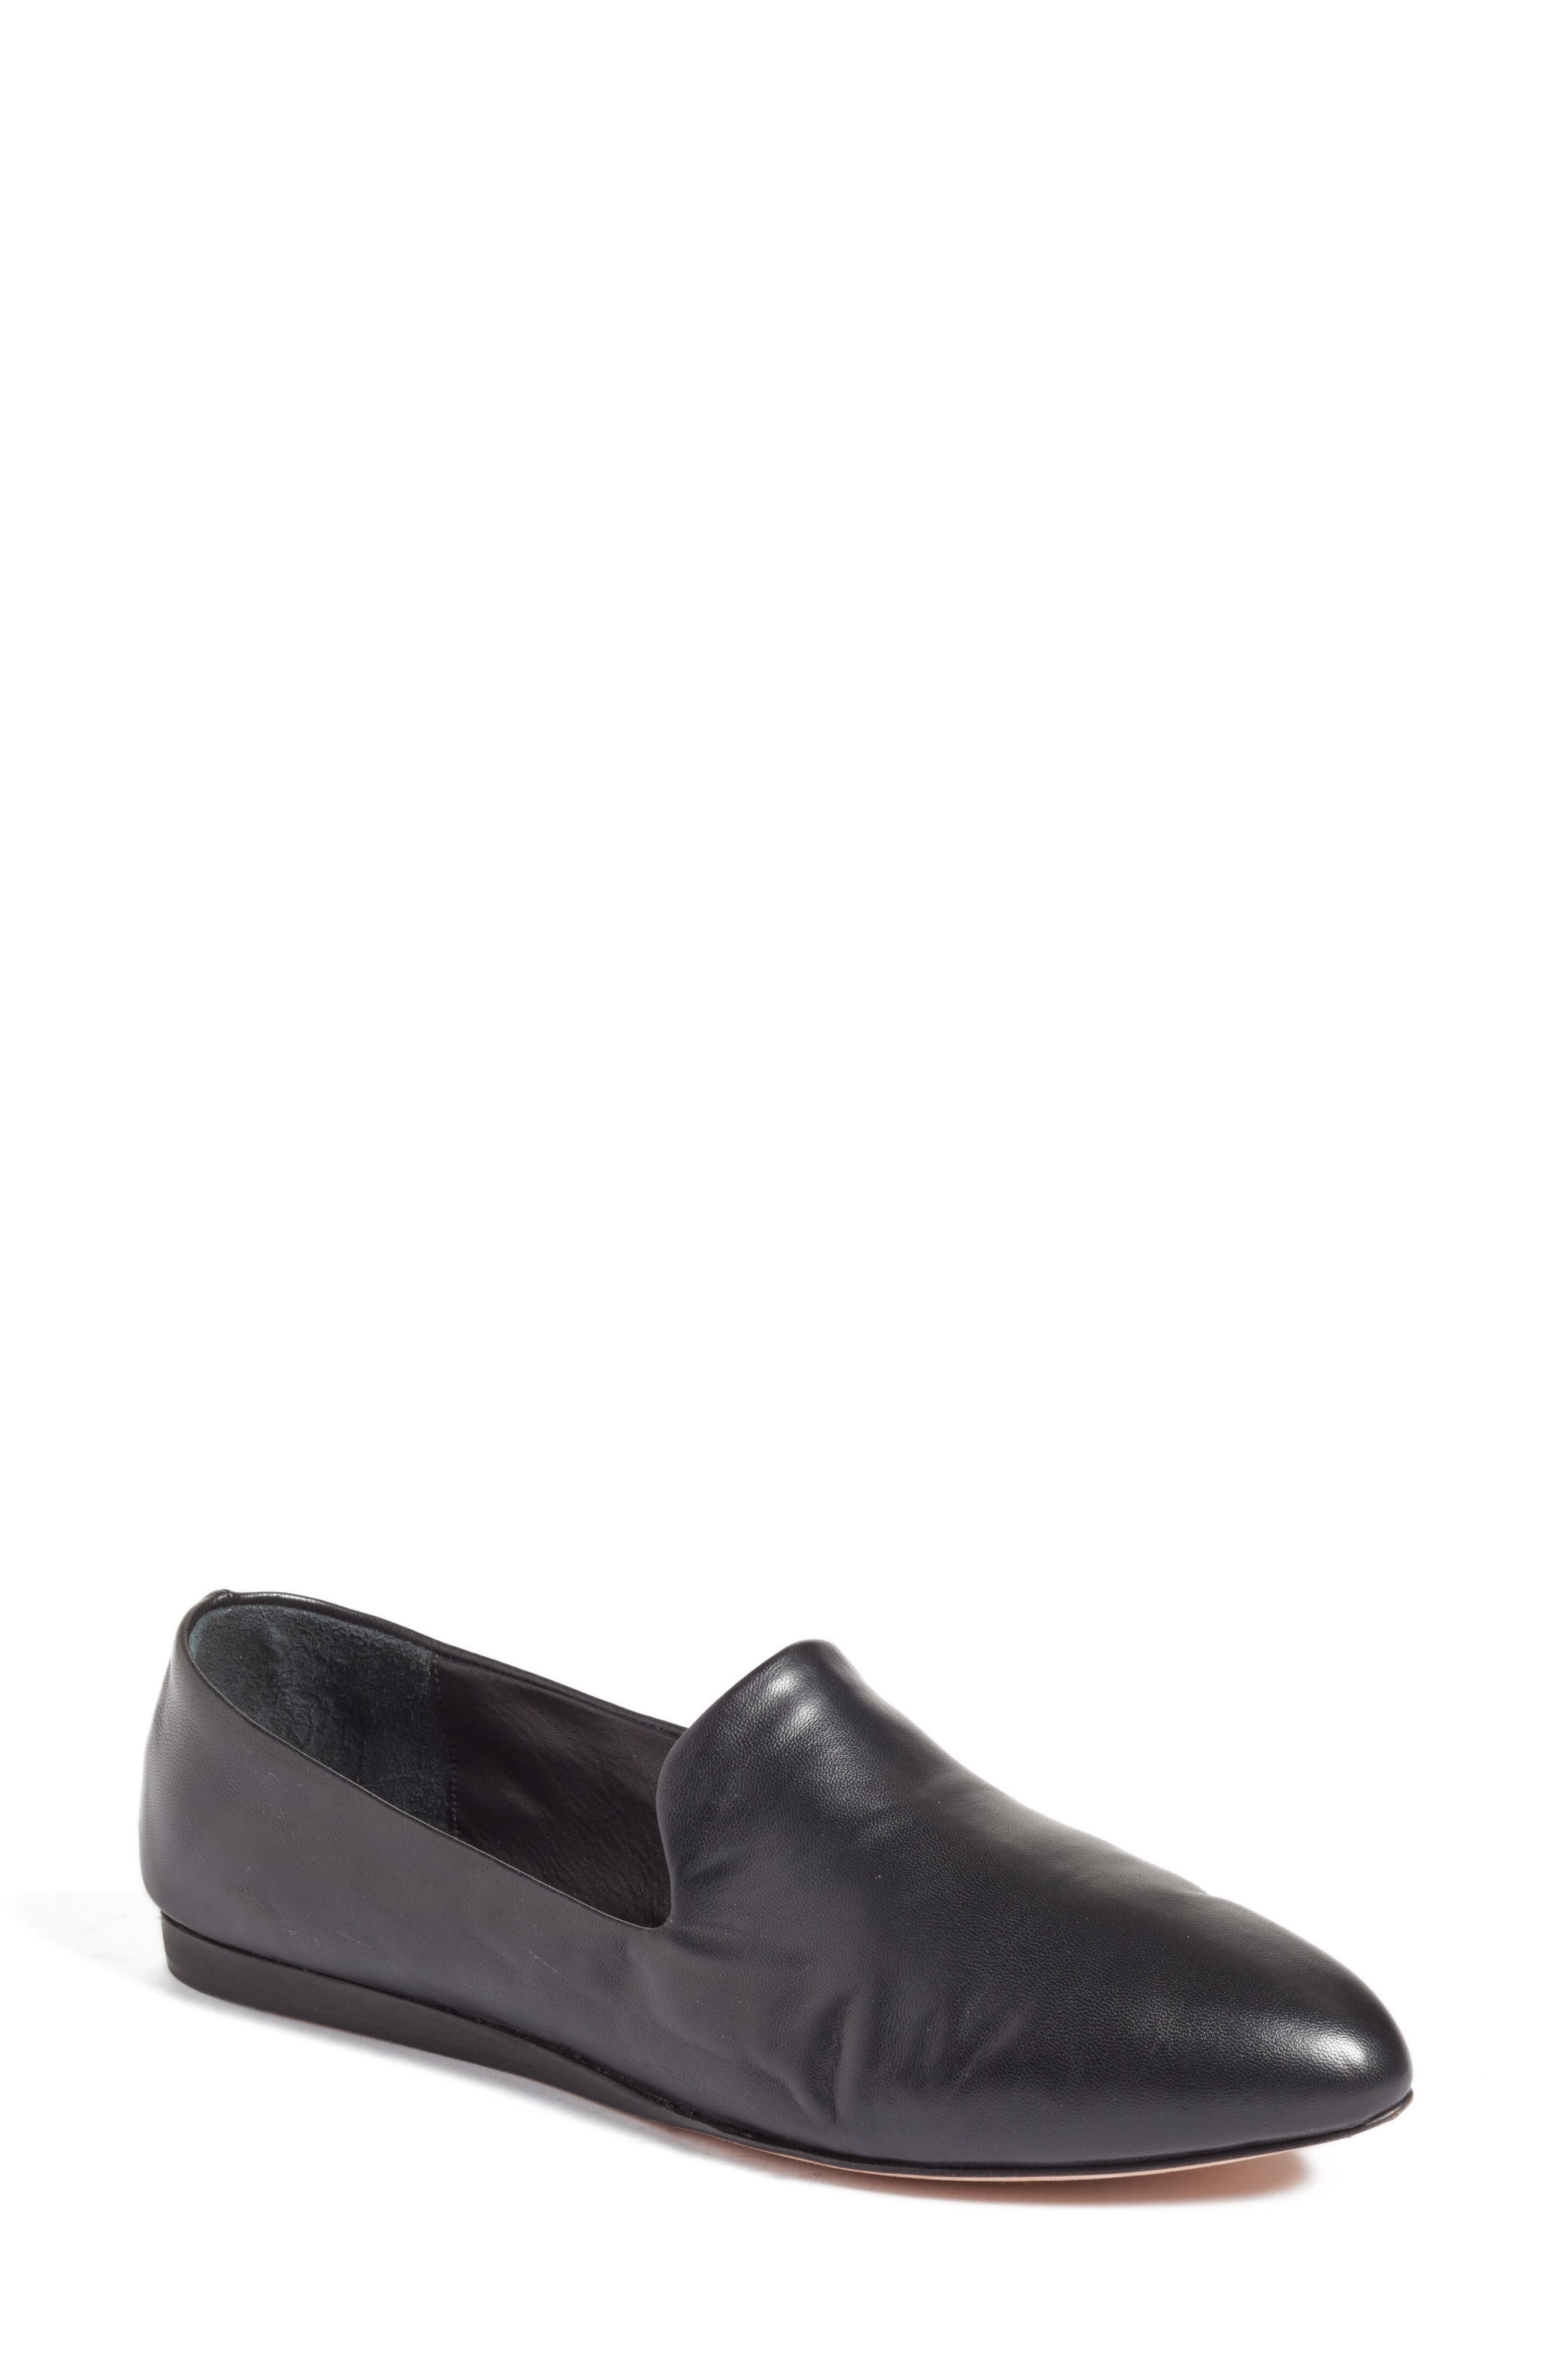 Griffin Pointy Toe Loafer,                             Main thumbnail 1, color,                             BLACK